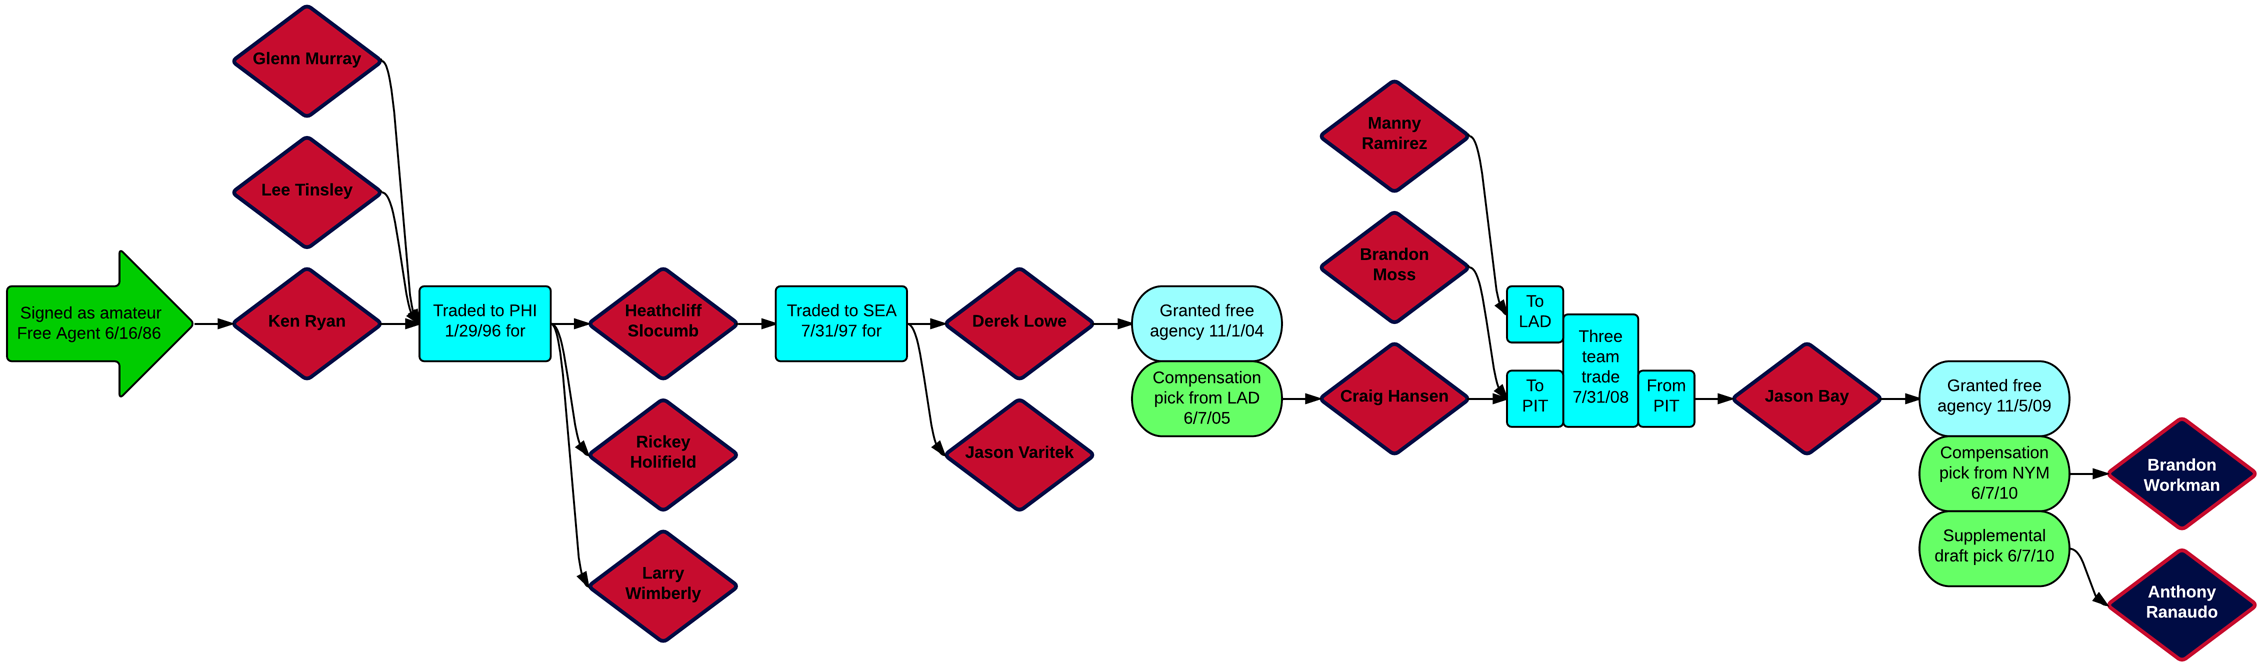 The transaction tree for Ranaudo and Workman